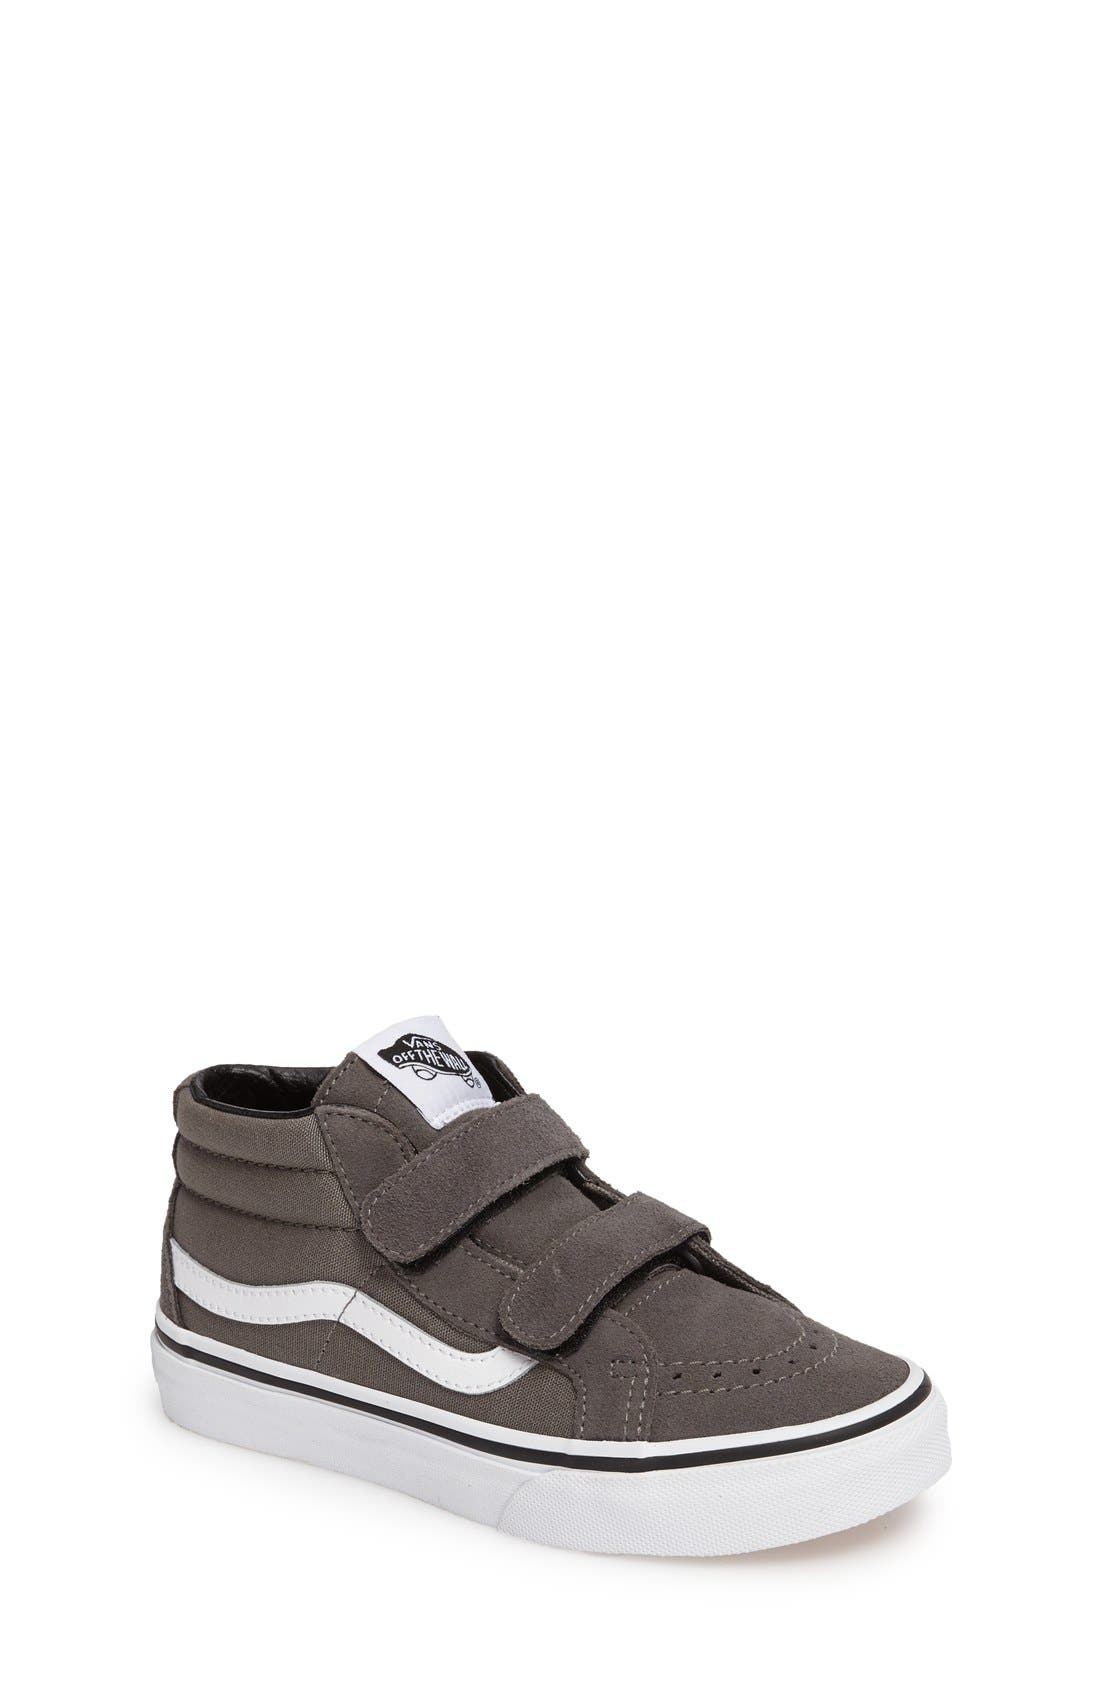 SK8 Mid-Top Reissue Sneaker,                             Main thumbnail 1, color,                             GREY FABRIC